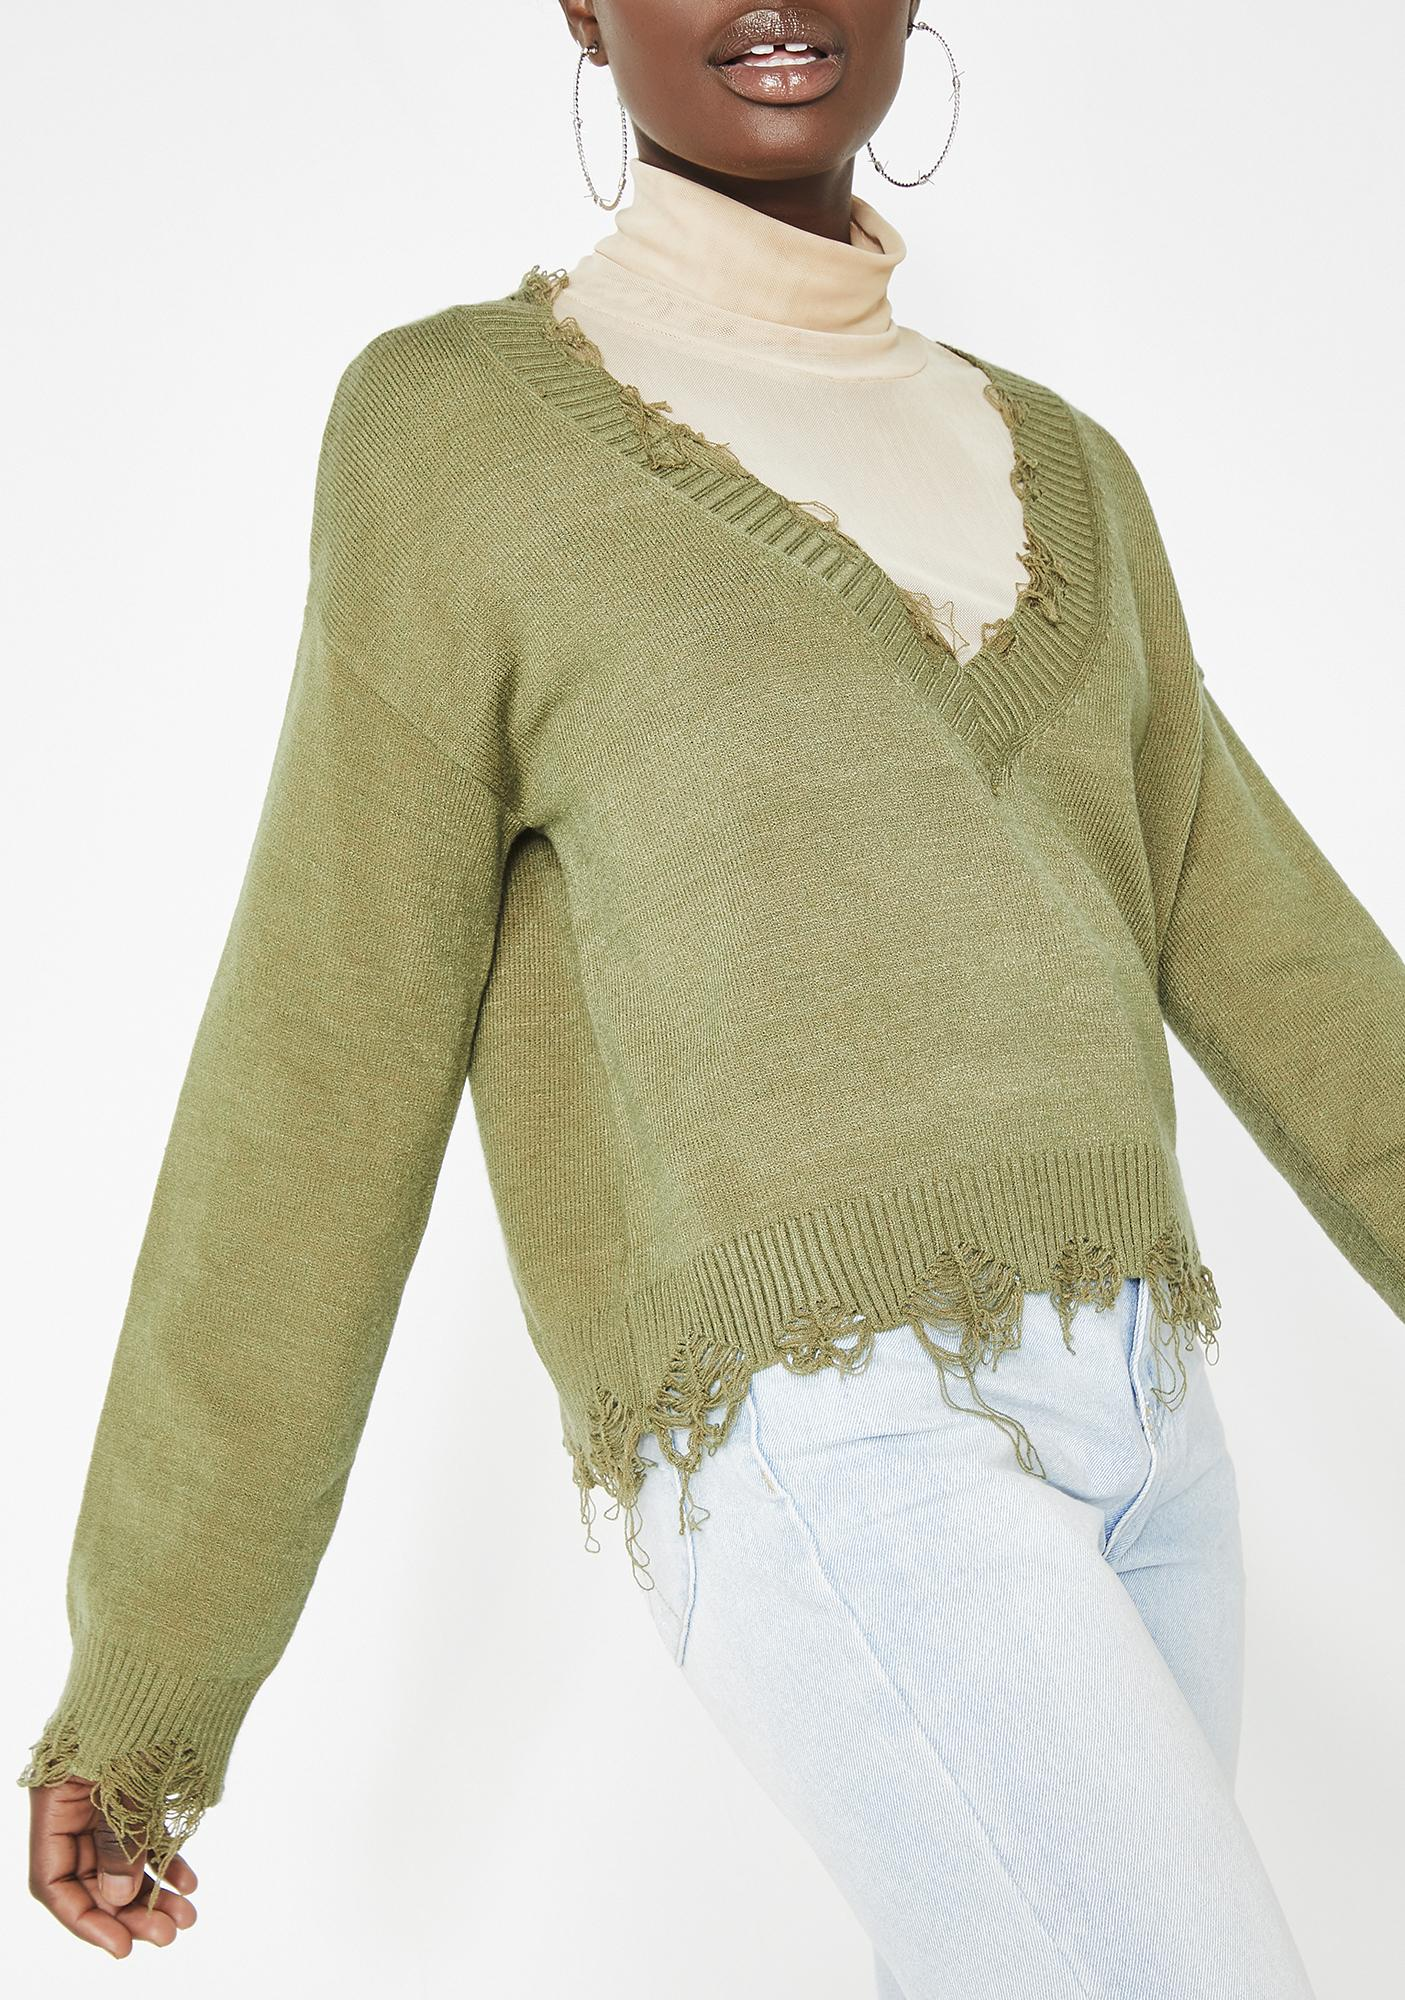 Unfinished Business Knit Sweater